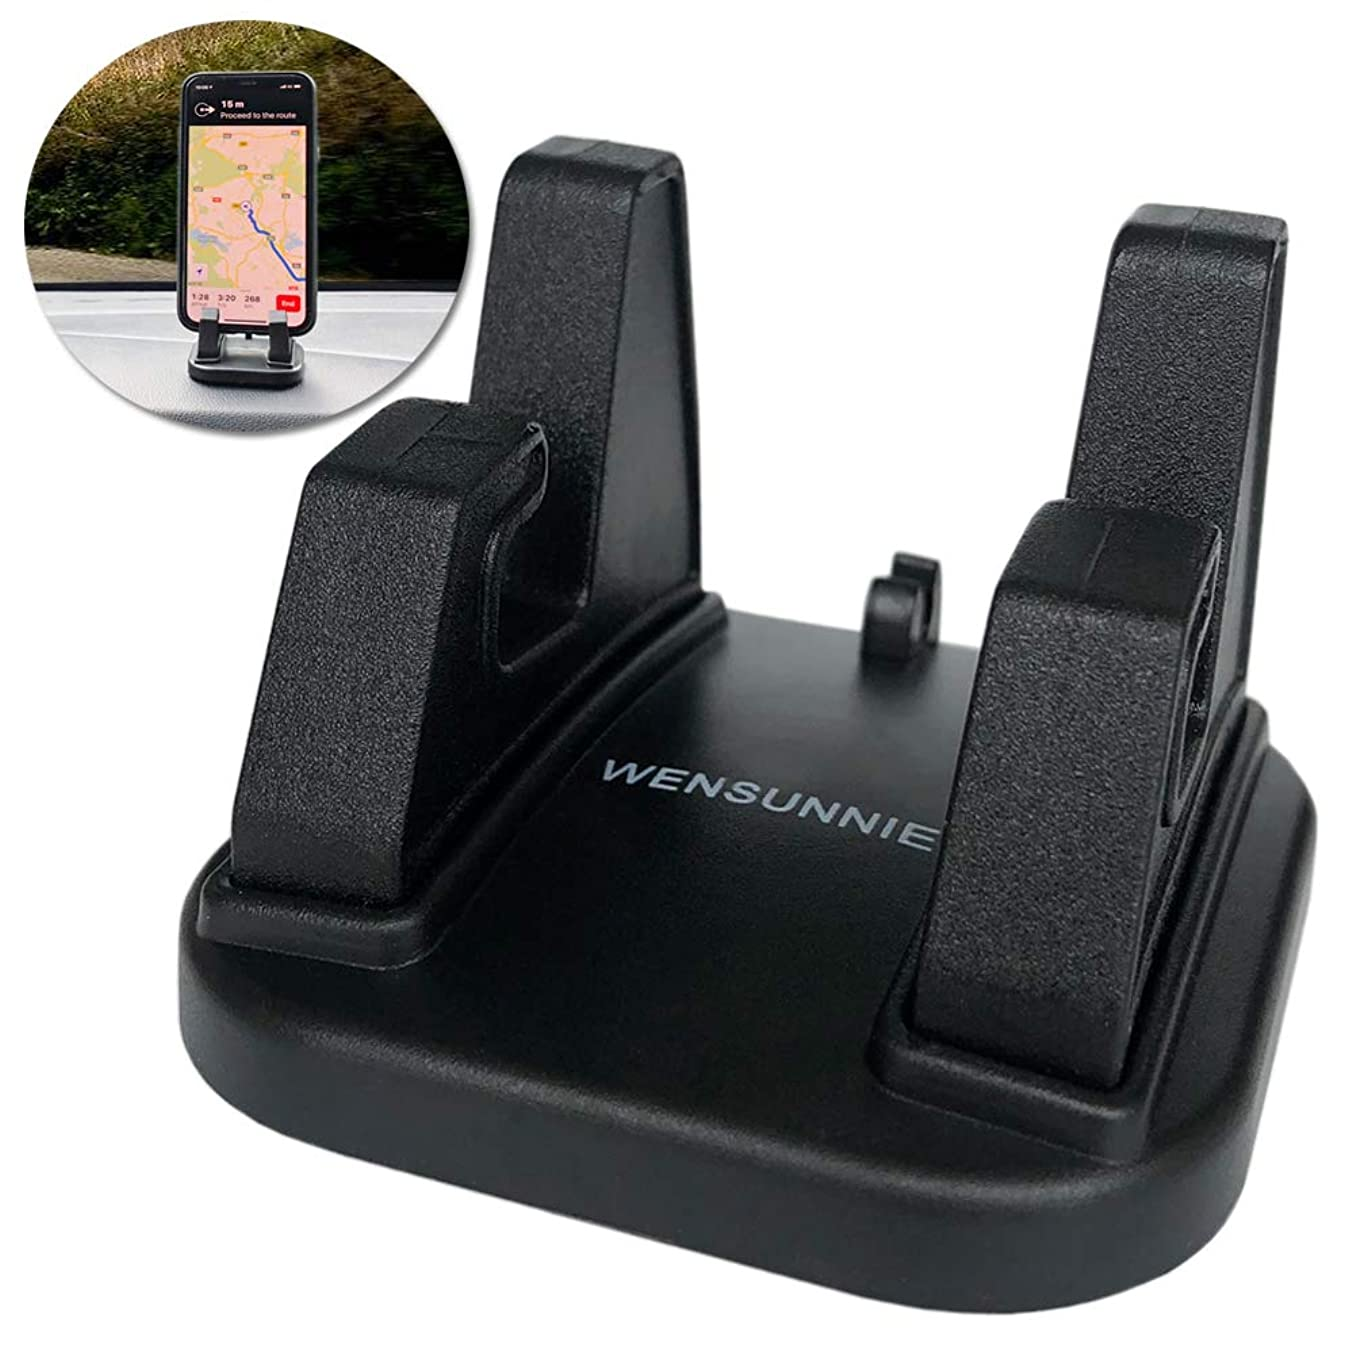 Car Hands-Free Cell Phone Holder-Dashboard 360 Rotation Car Phone Mount GPS/Sunglasses Holder Mounting in Vehicles Pickup Compatible with iPhone X XS Max 8 7 Plus Galaxy S10 S9 (Black)